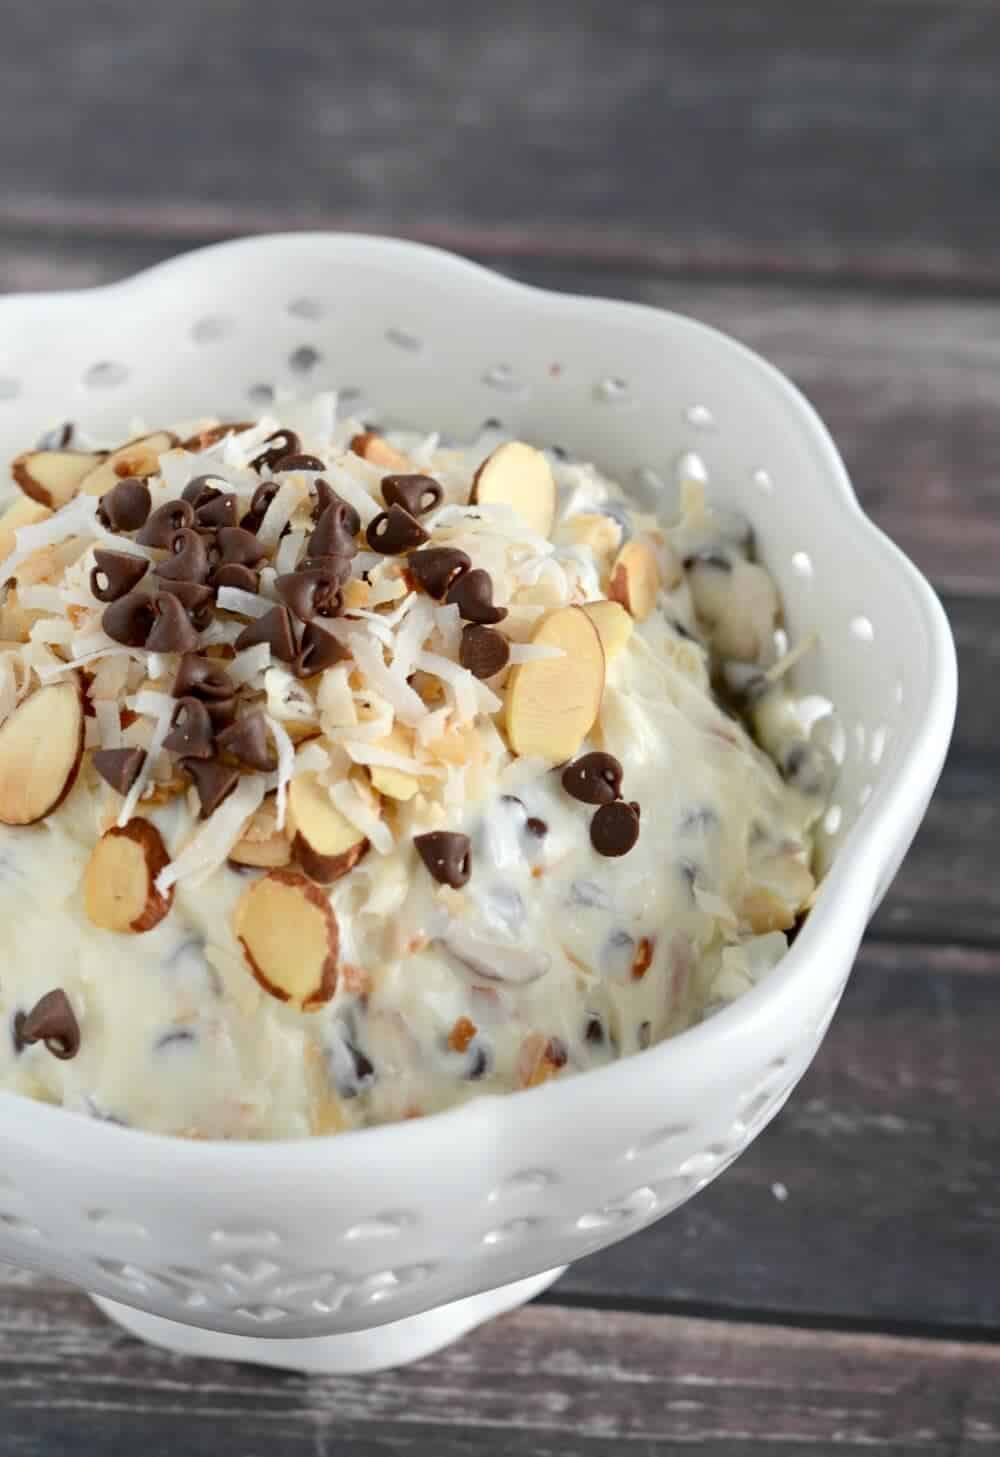 Almond Joy Dip . . . this yummy dip is ready in just minutes, and tastes fabulous with fruit, crackers, or pretzels. Such a yummy snack!